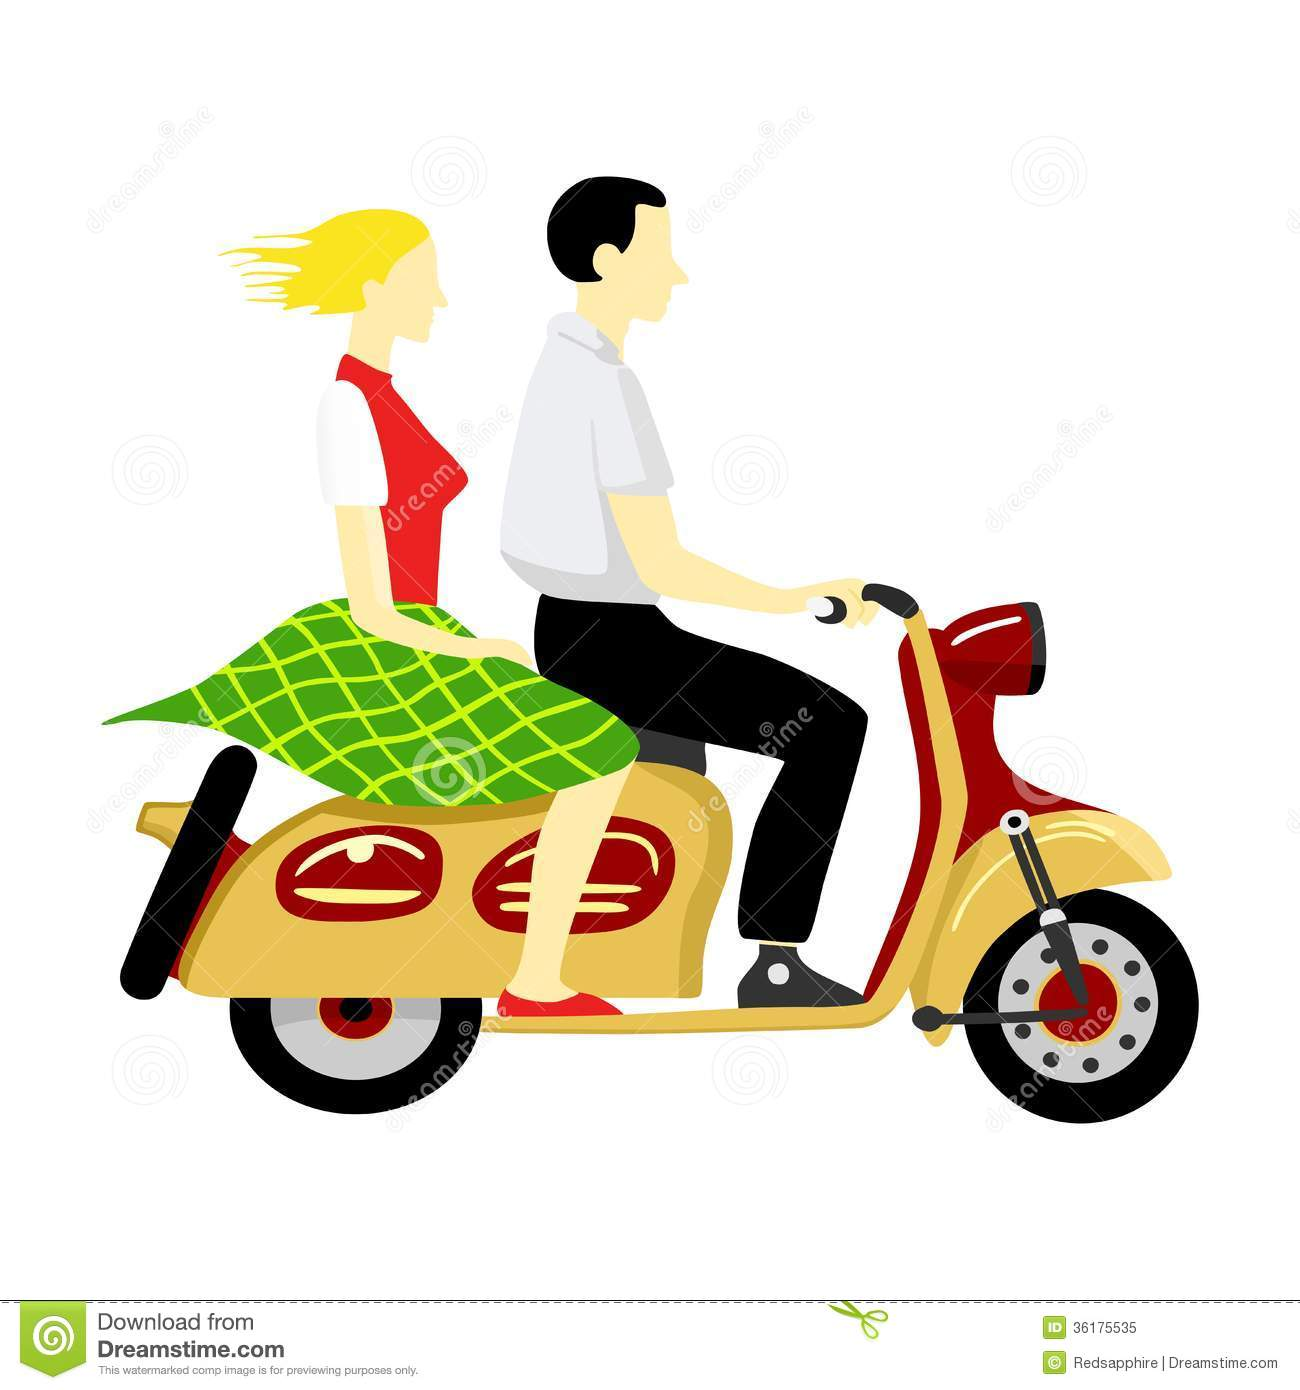 Ride a motorcycle clipart.